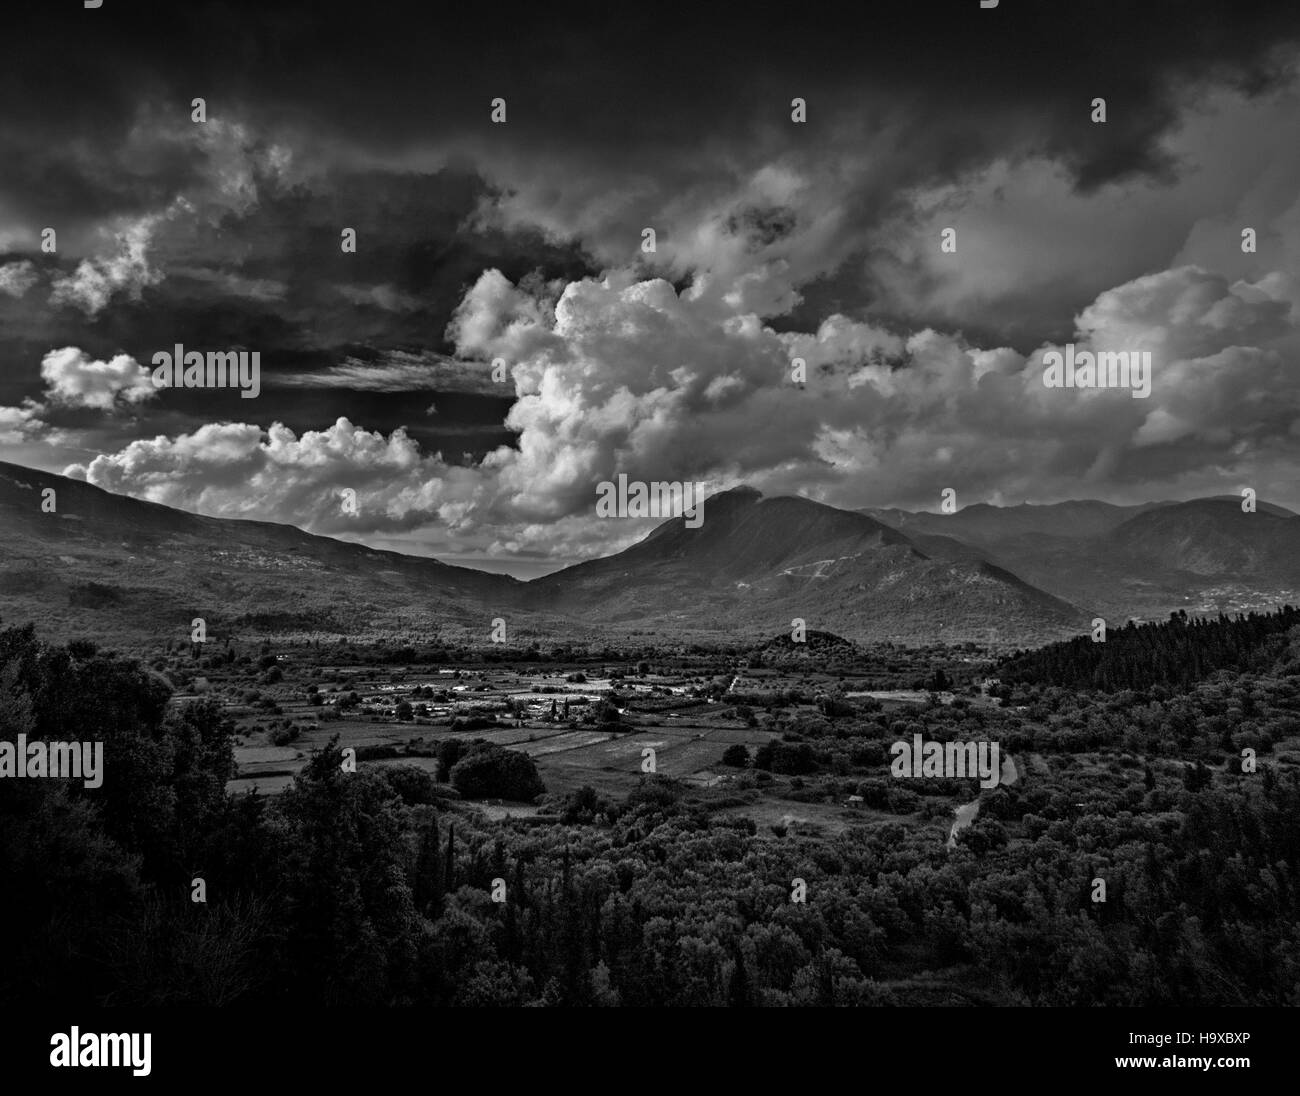 A black and white landscape - Stock Image